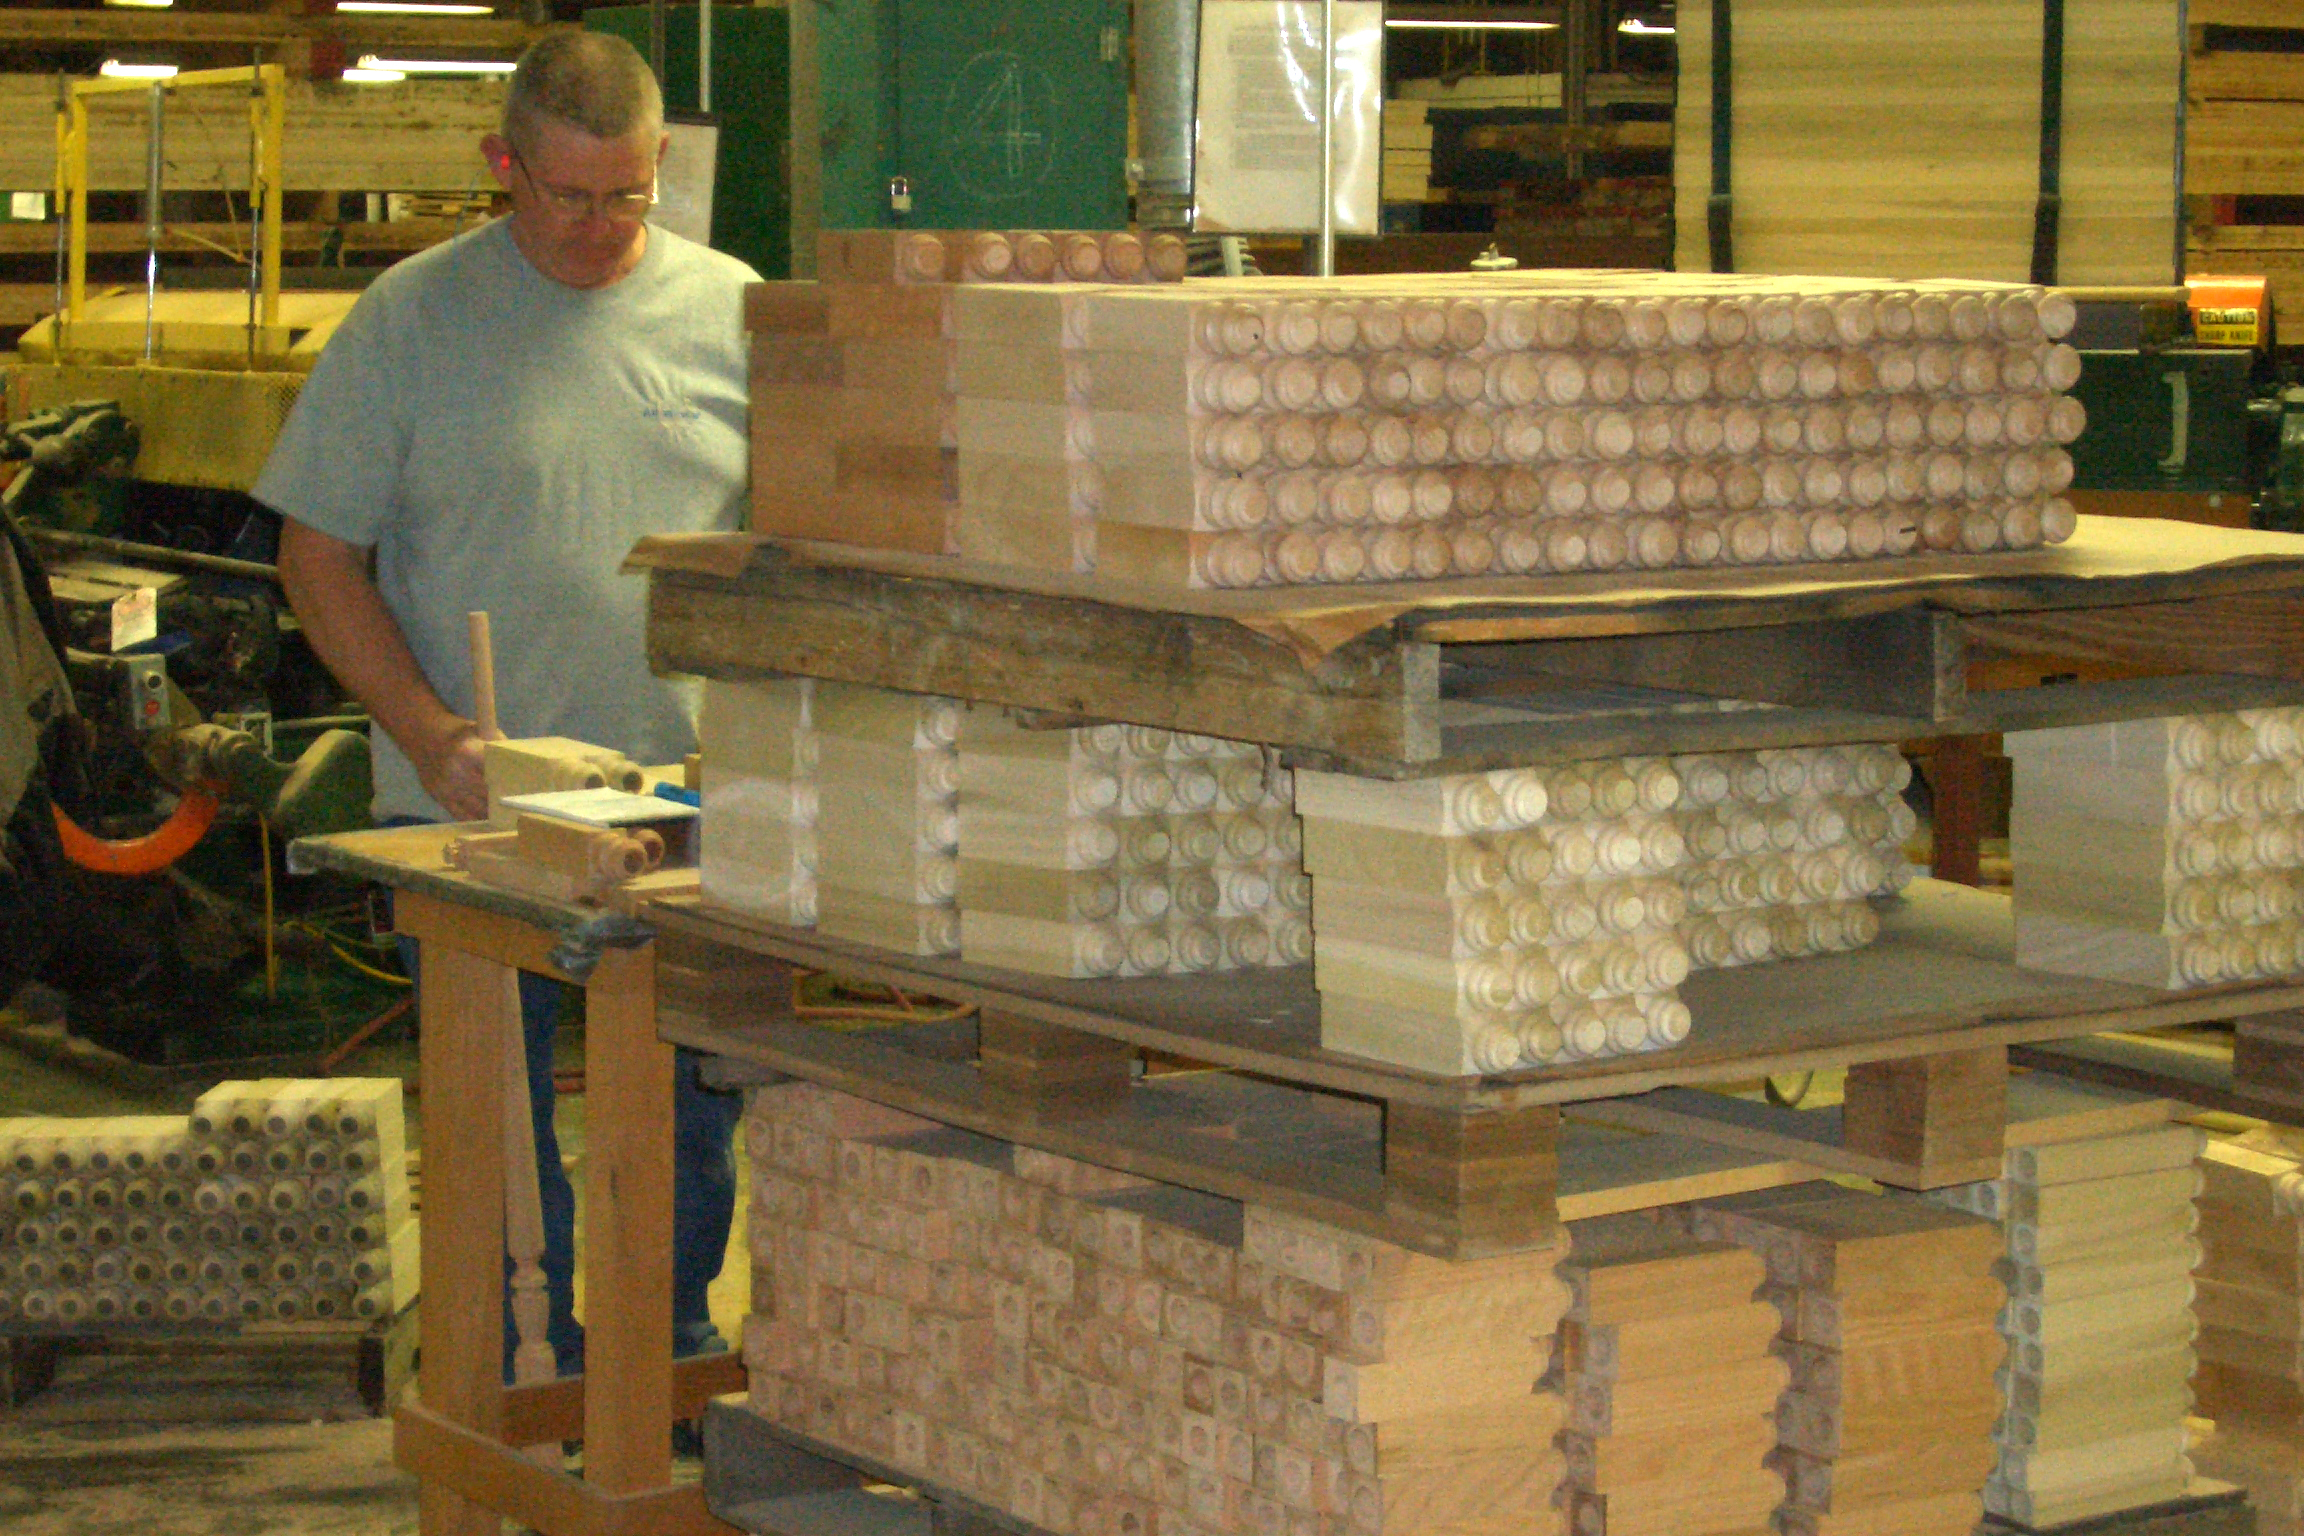 A man stands behind a pallet of wooden stair parts in a factory.